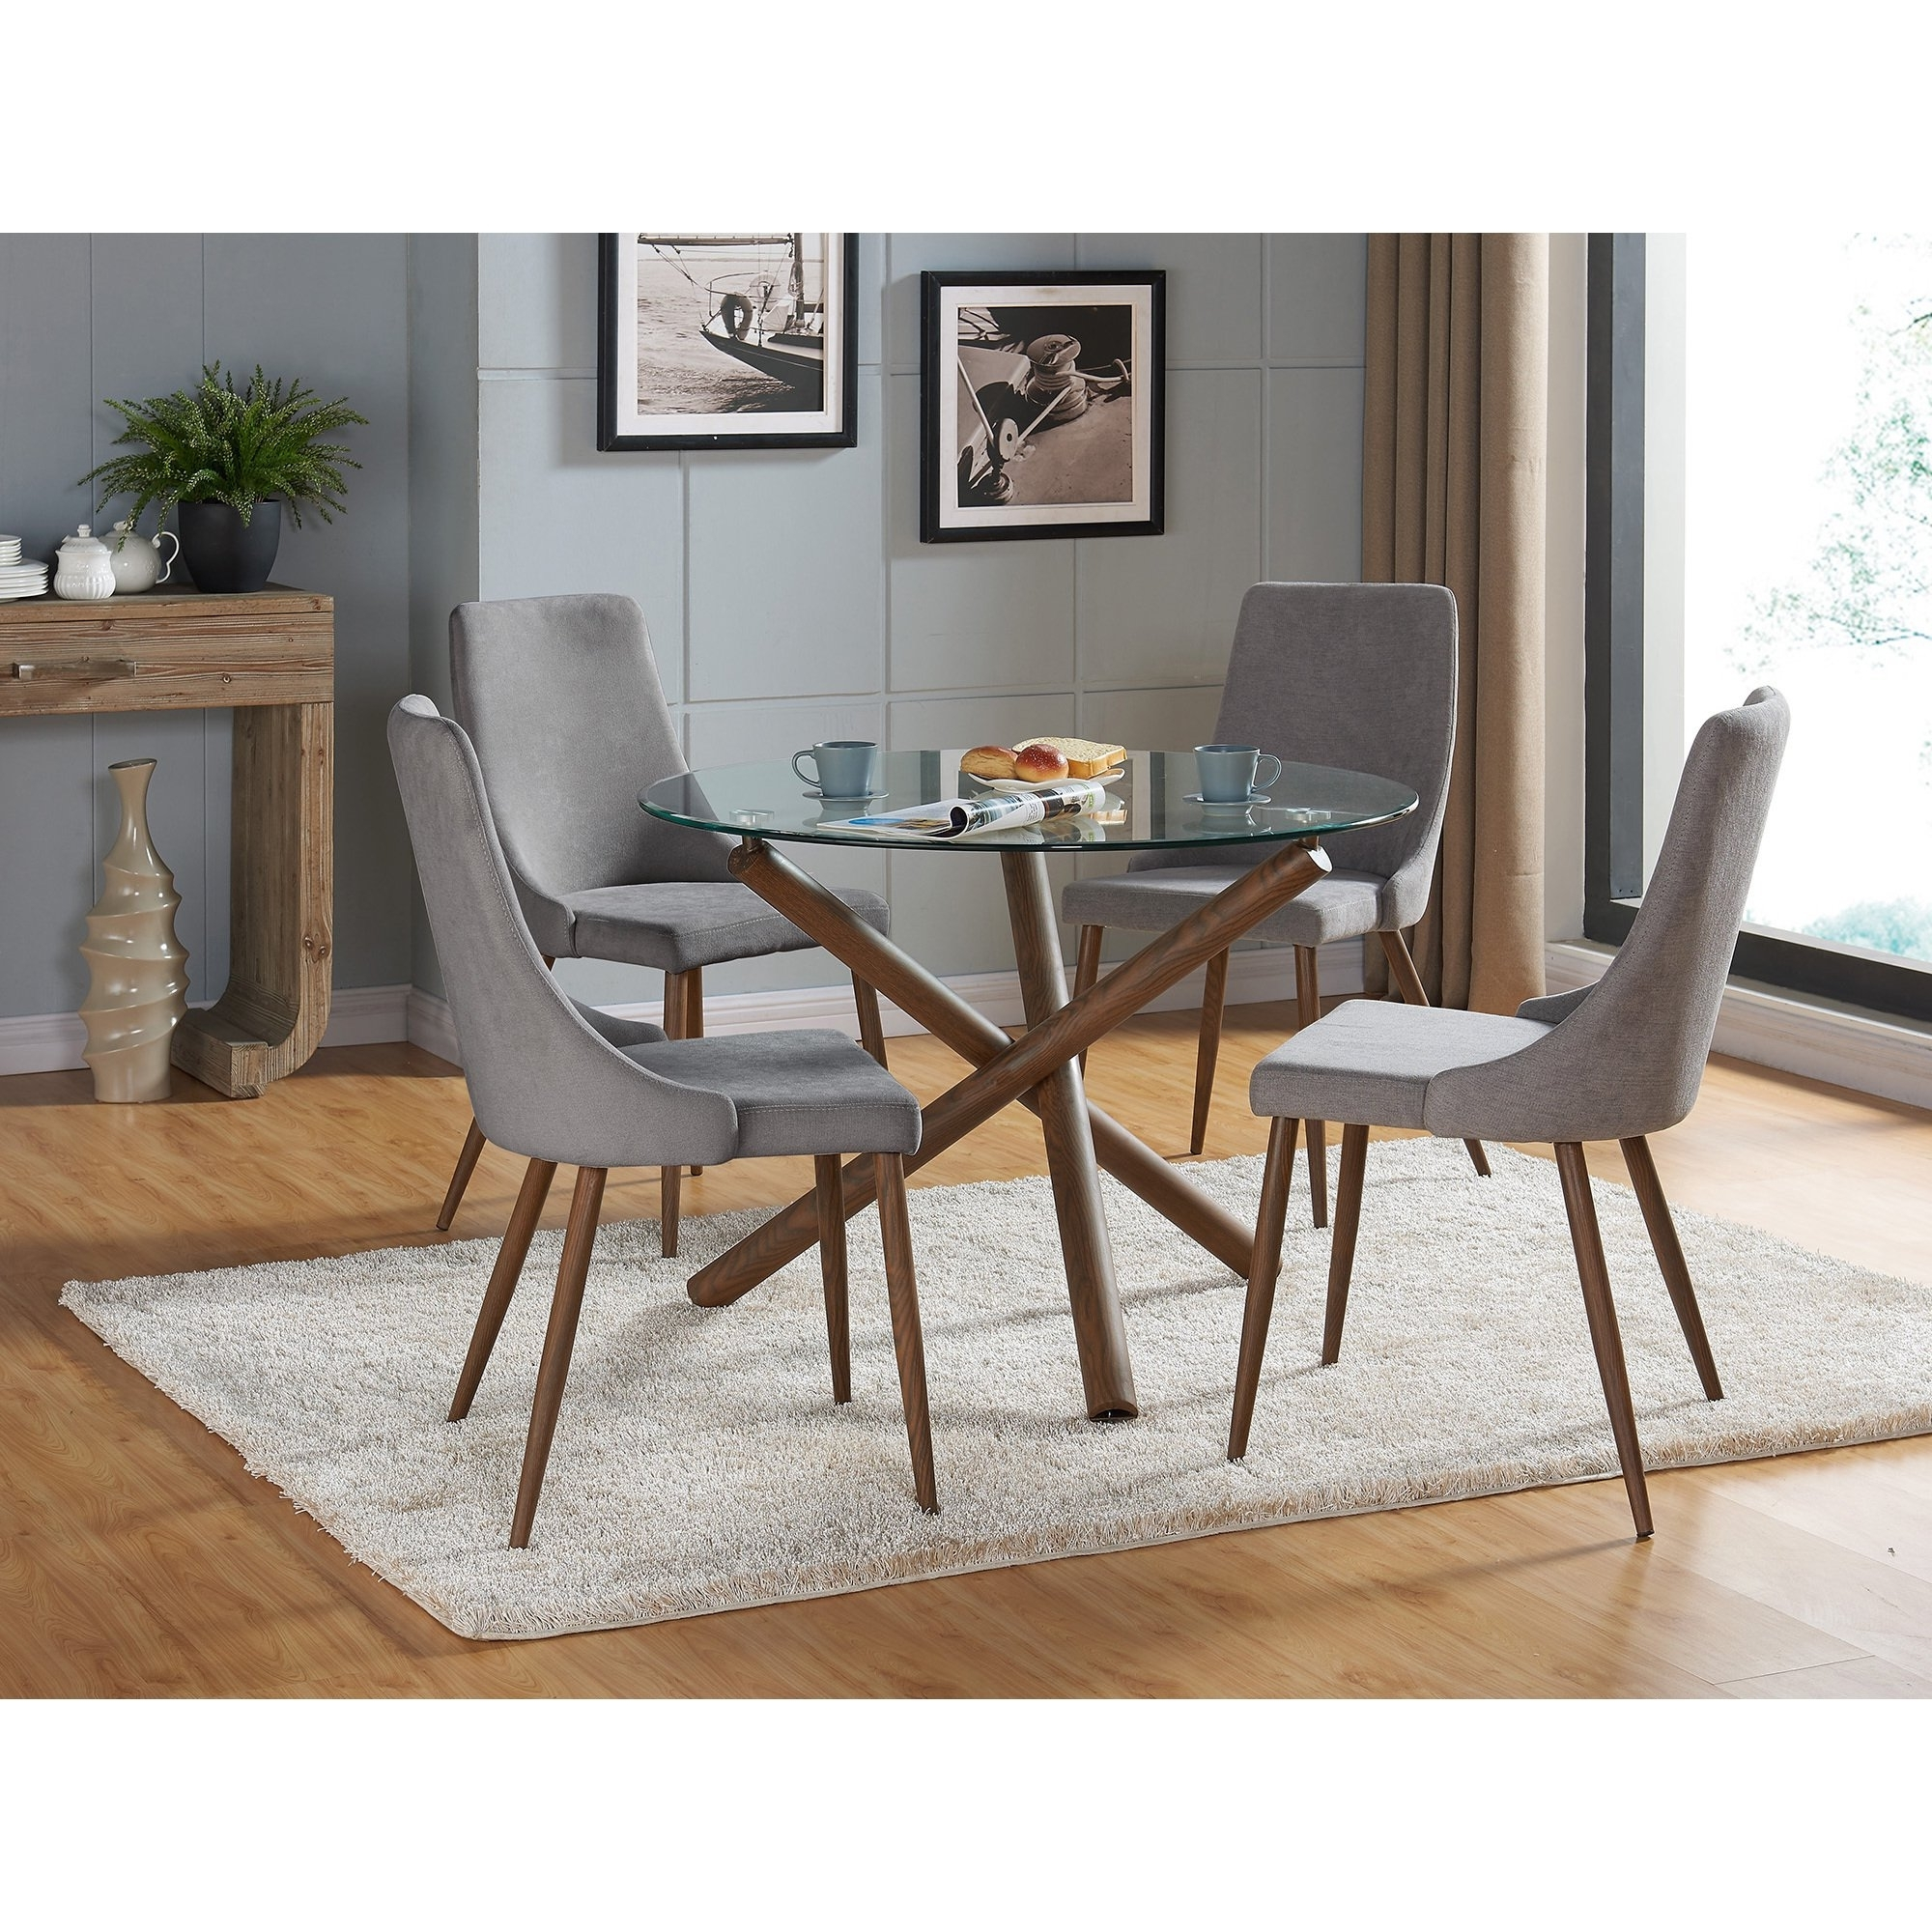 Shop Carson Carrington Kaskinen Dining Chair (Set Of 2) – Free For Current Cora 7 Piece Dining Sets (View 10 of 25)